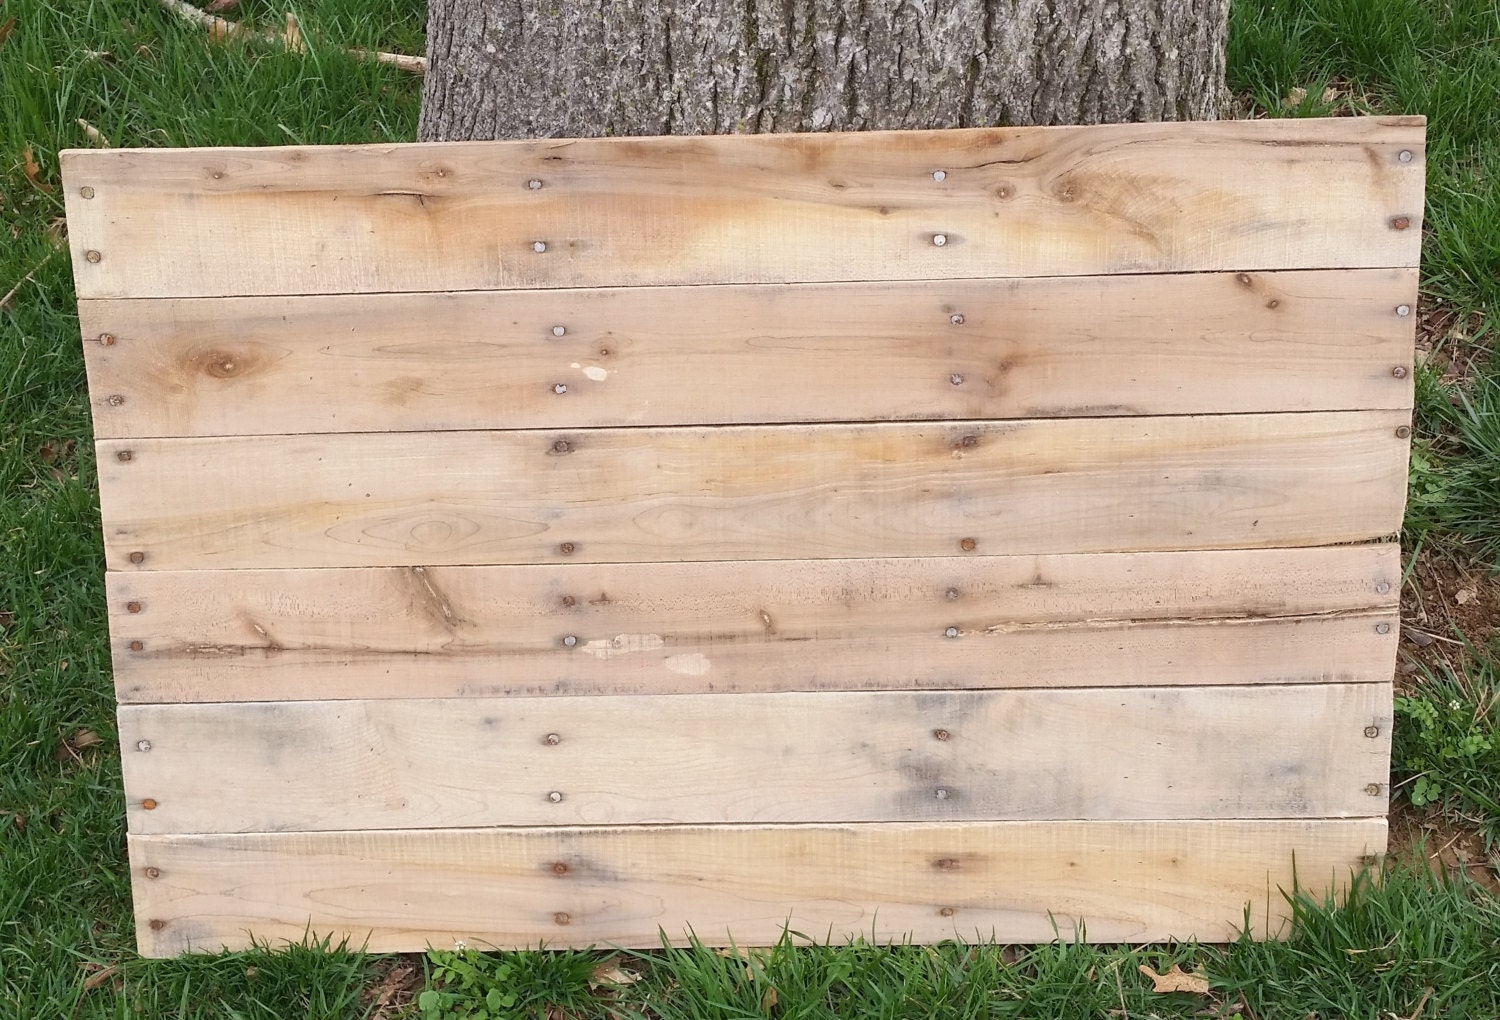 Blank Reclaimed Wood Pallet Sign Plaque 20 X 30